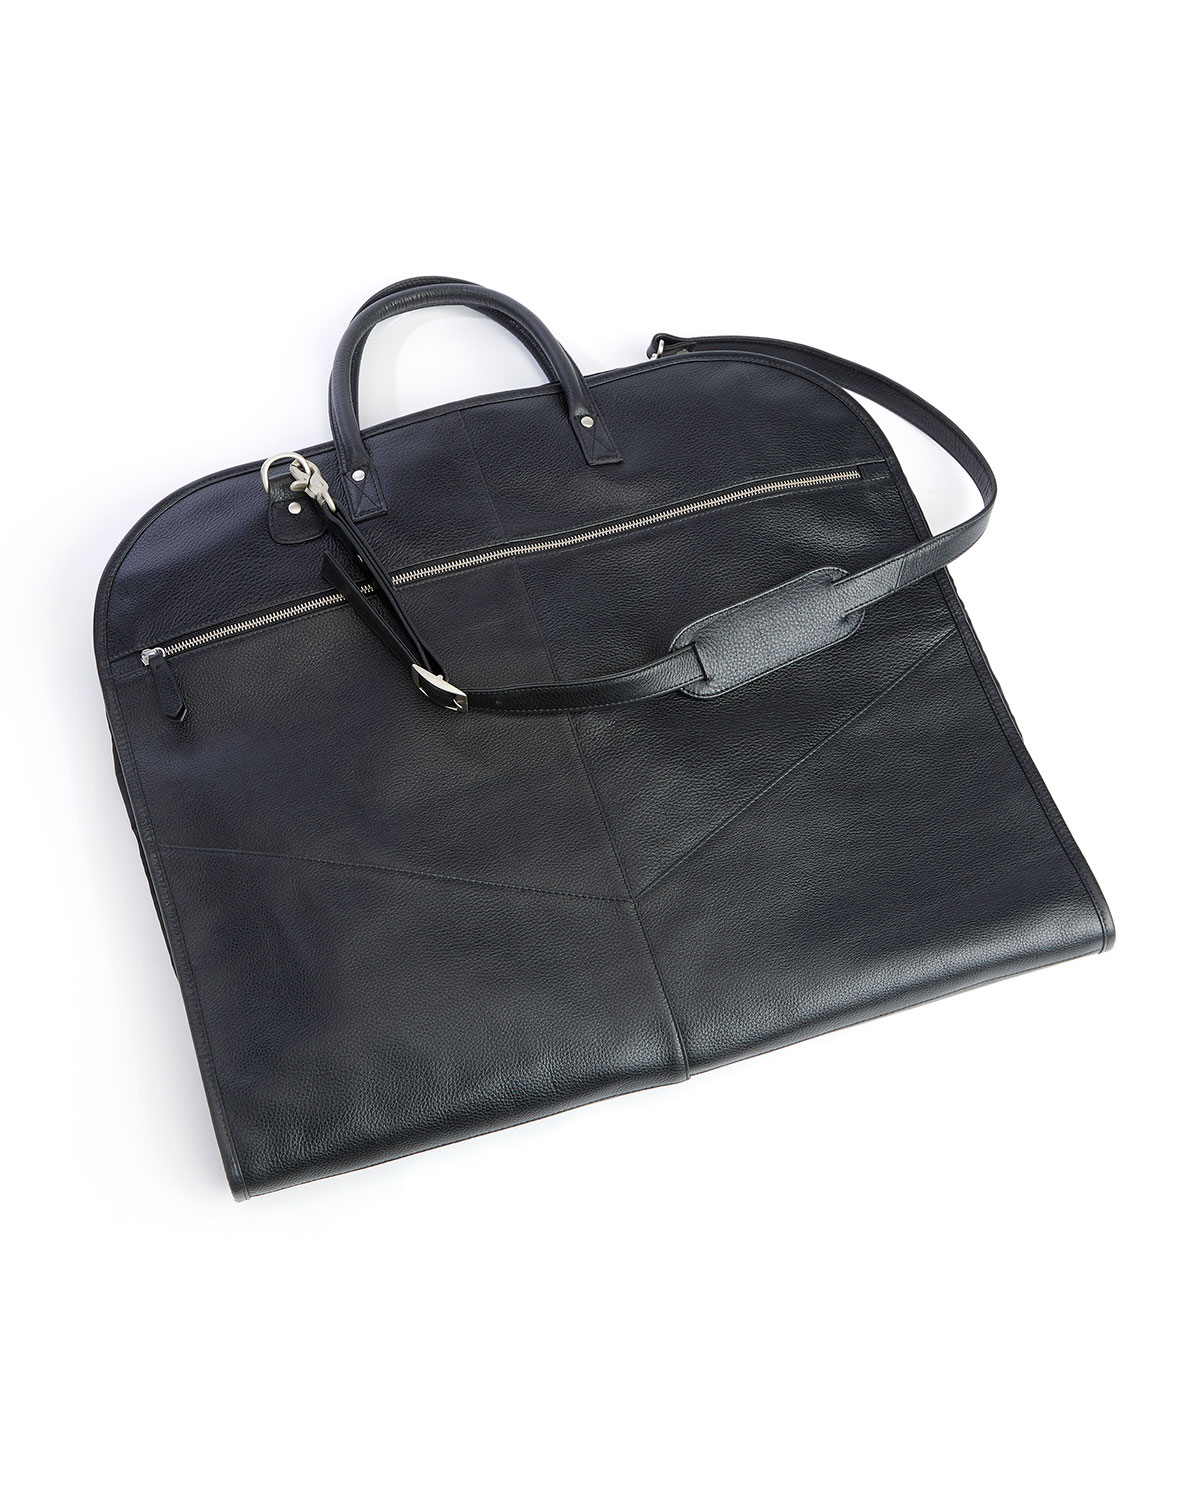 ROYCE New York Executive Garment Bag